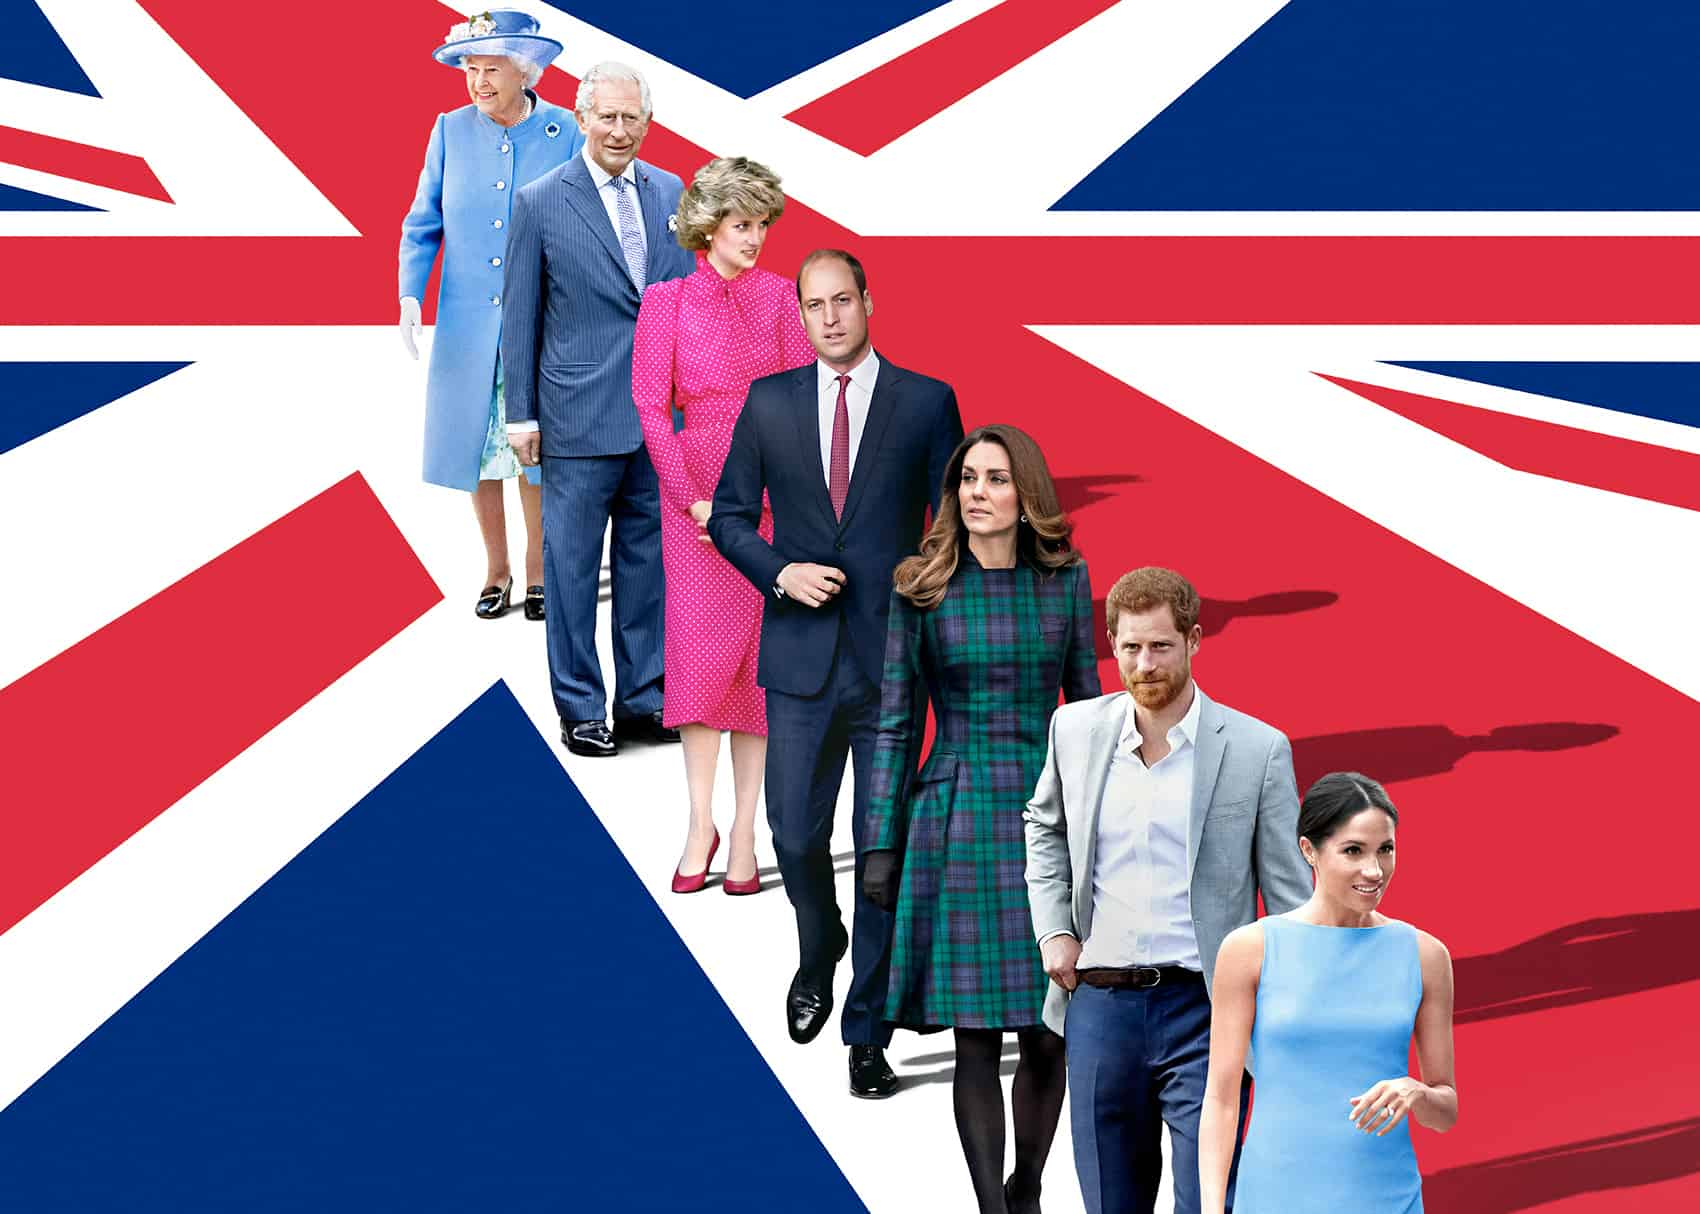 2 - The Windsors